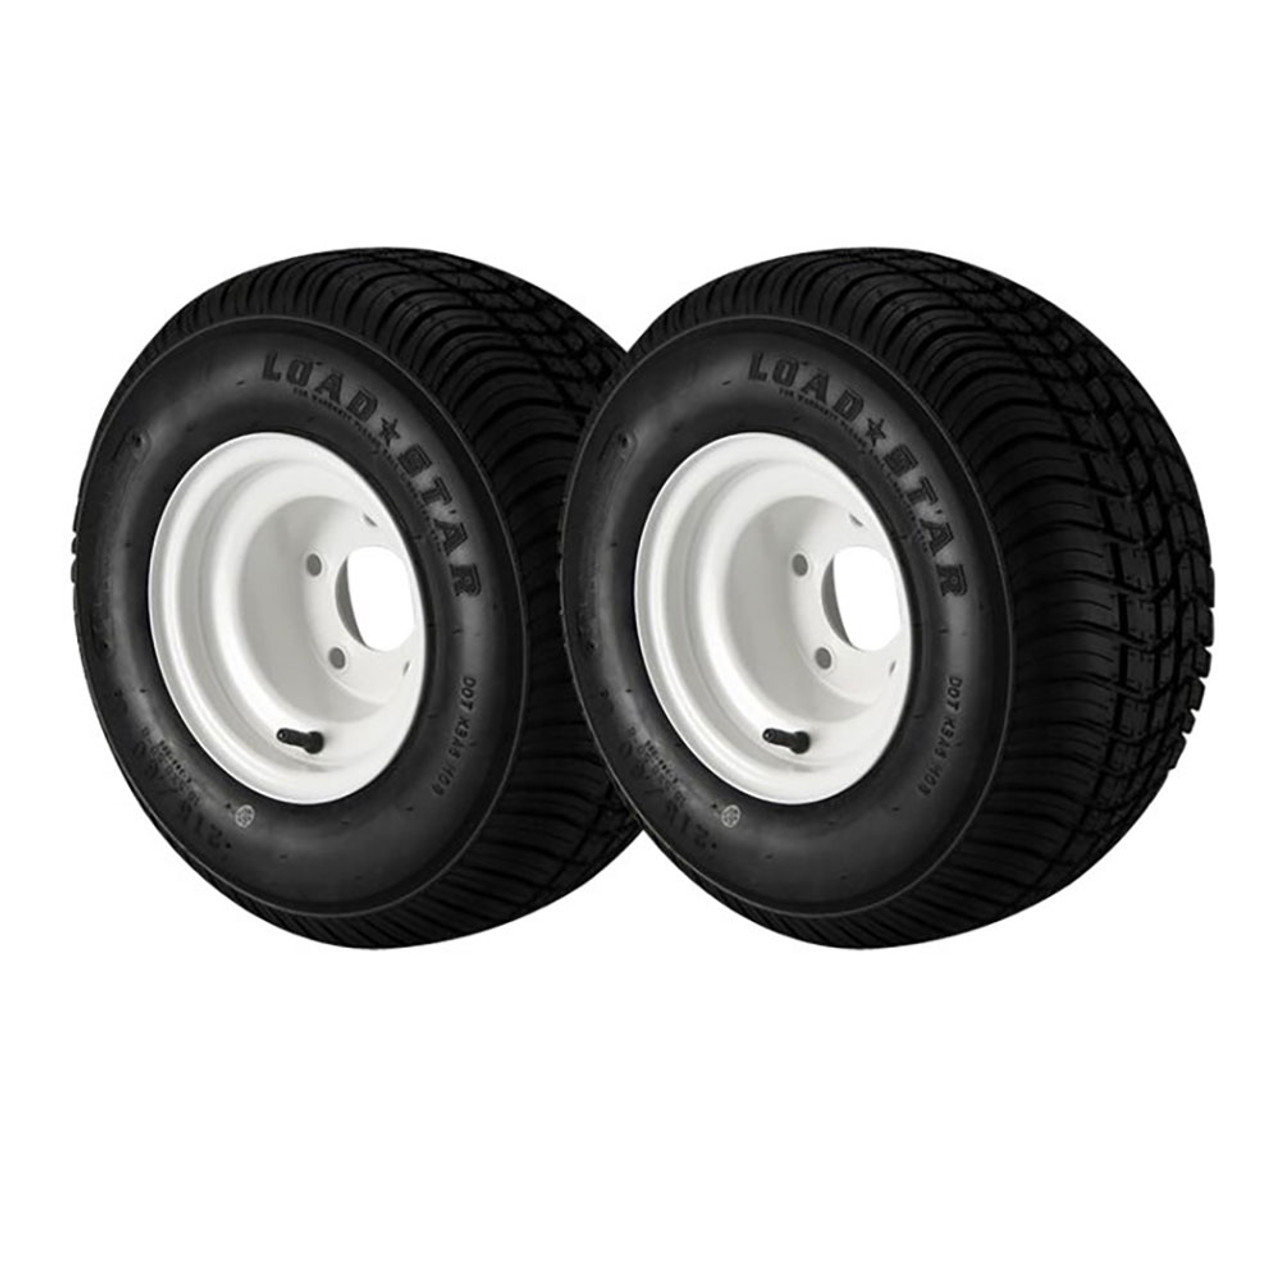 2 Pack - 18.5x8.50-8 Loadstar Trailer Tire LRC on 5 Bolt White Wheel